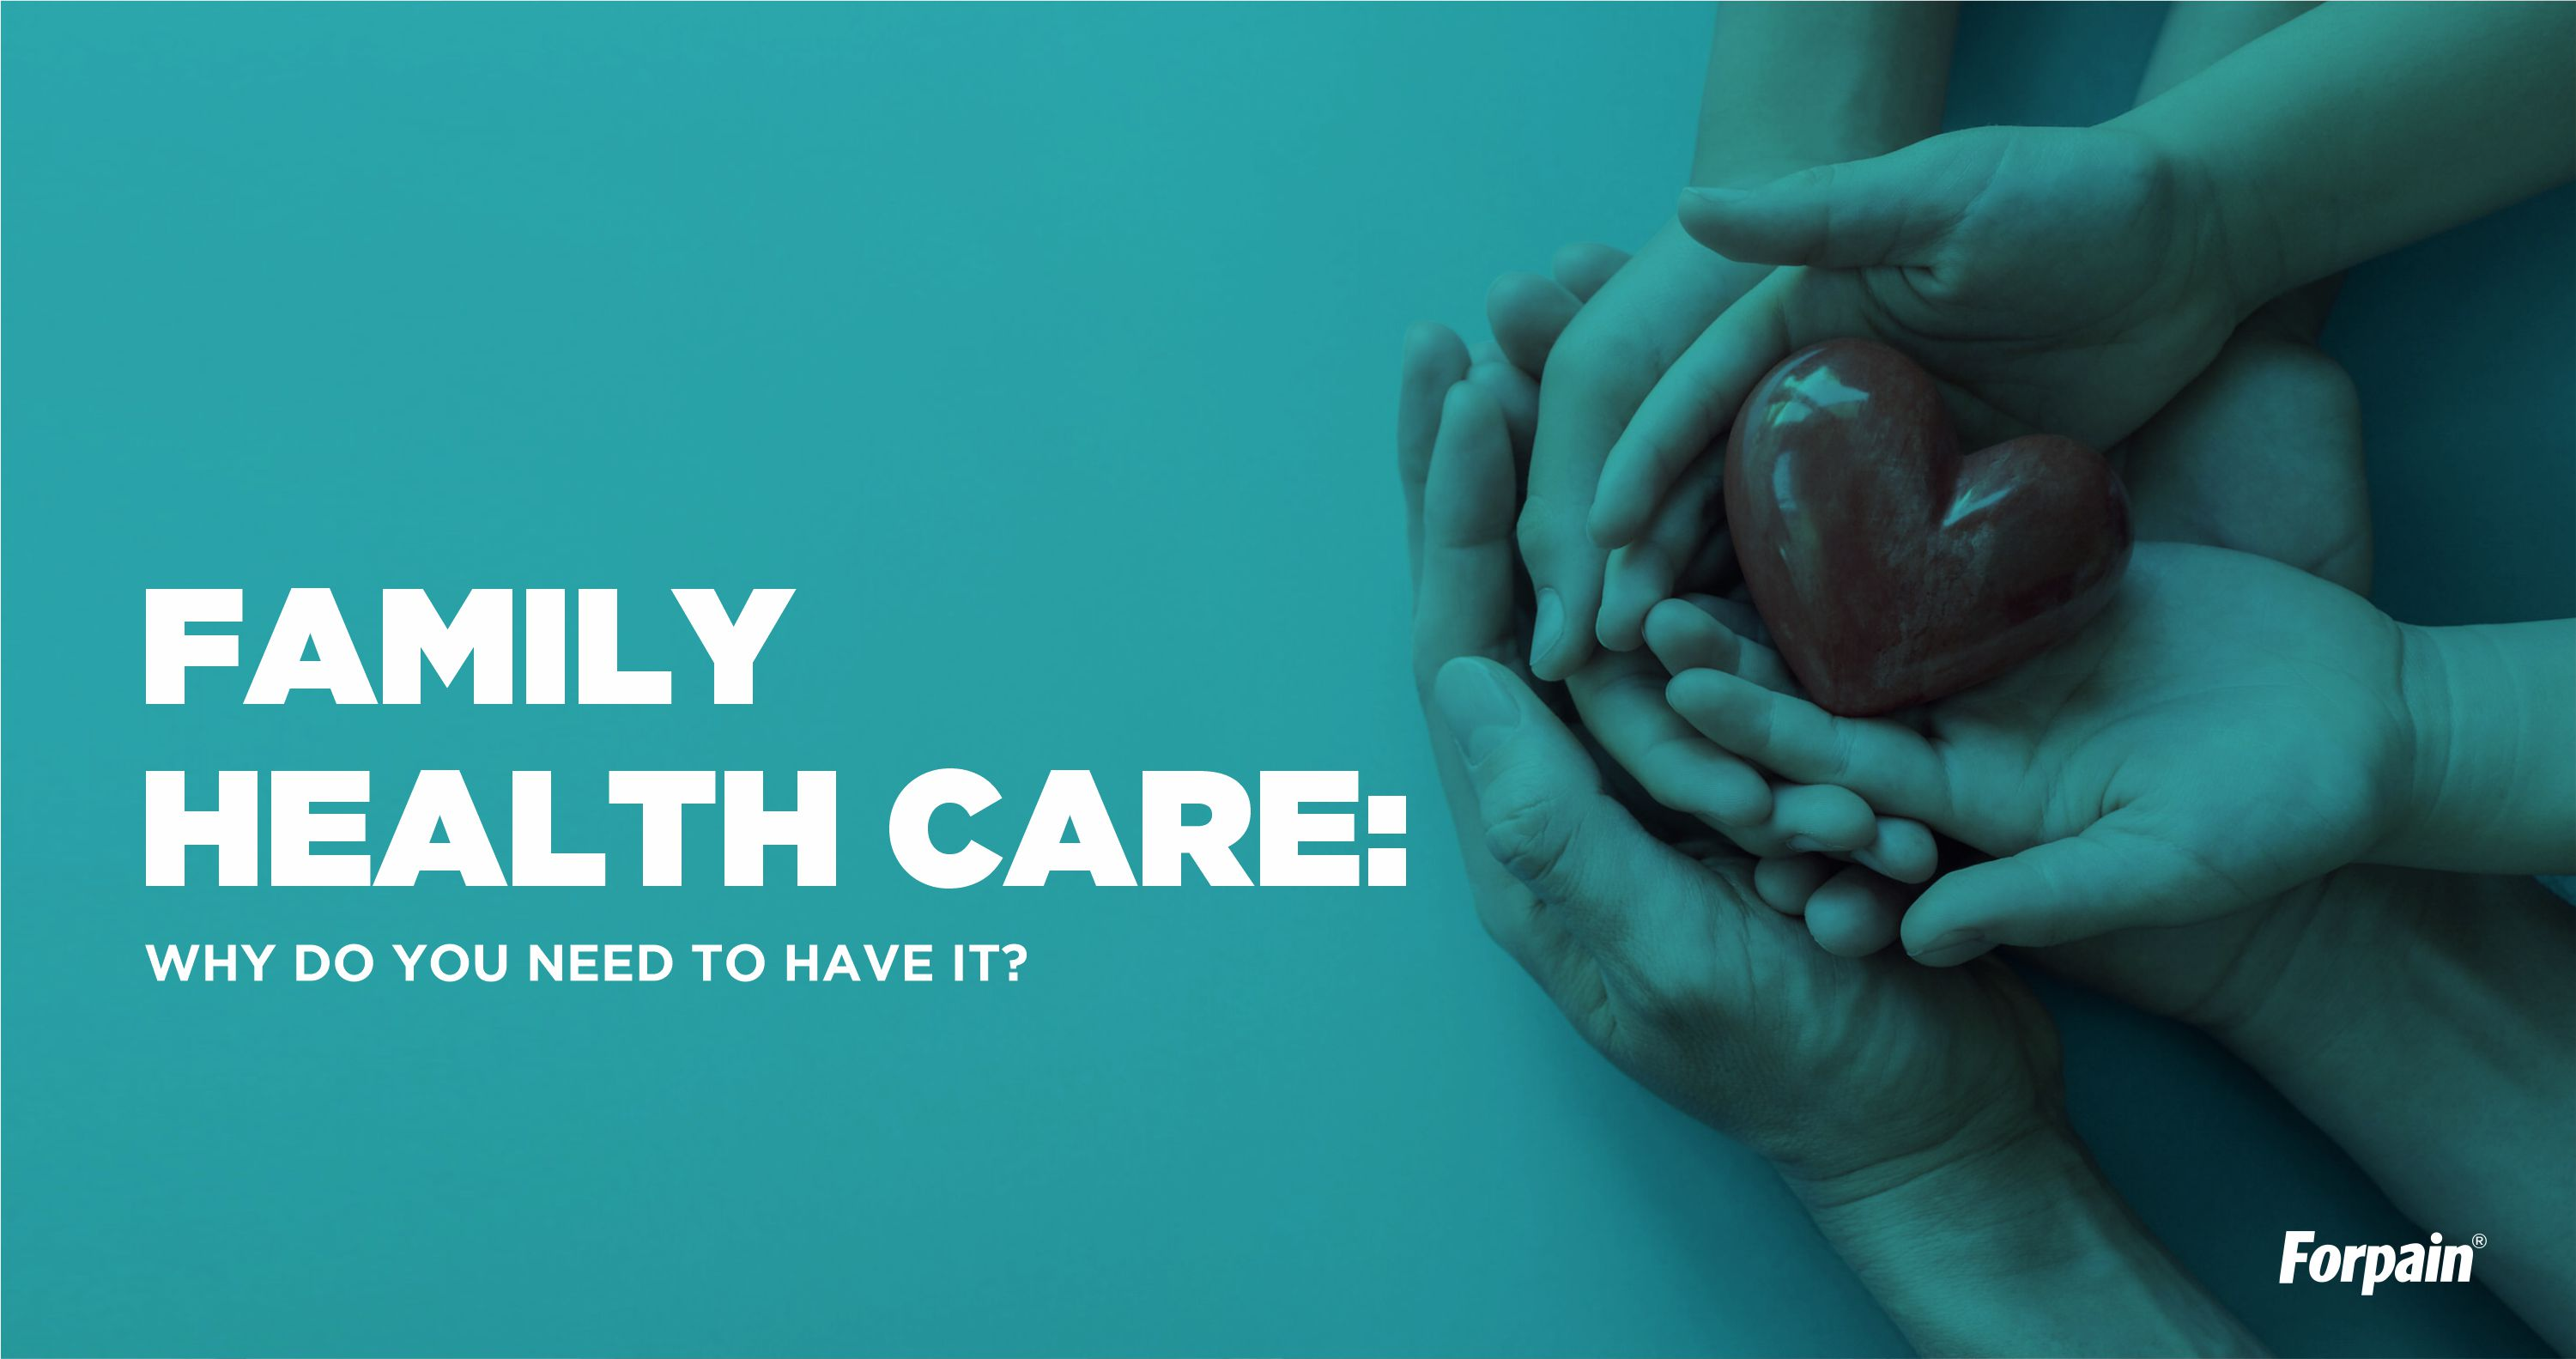 Family Health Care: Why Do You Need to Have It?